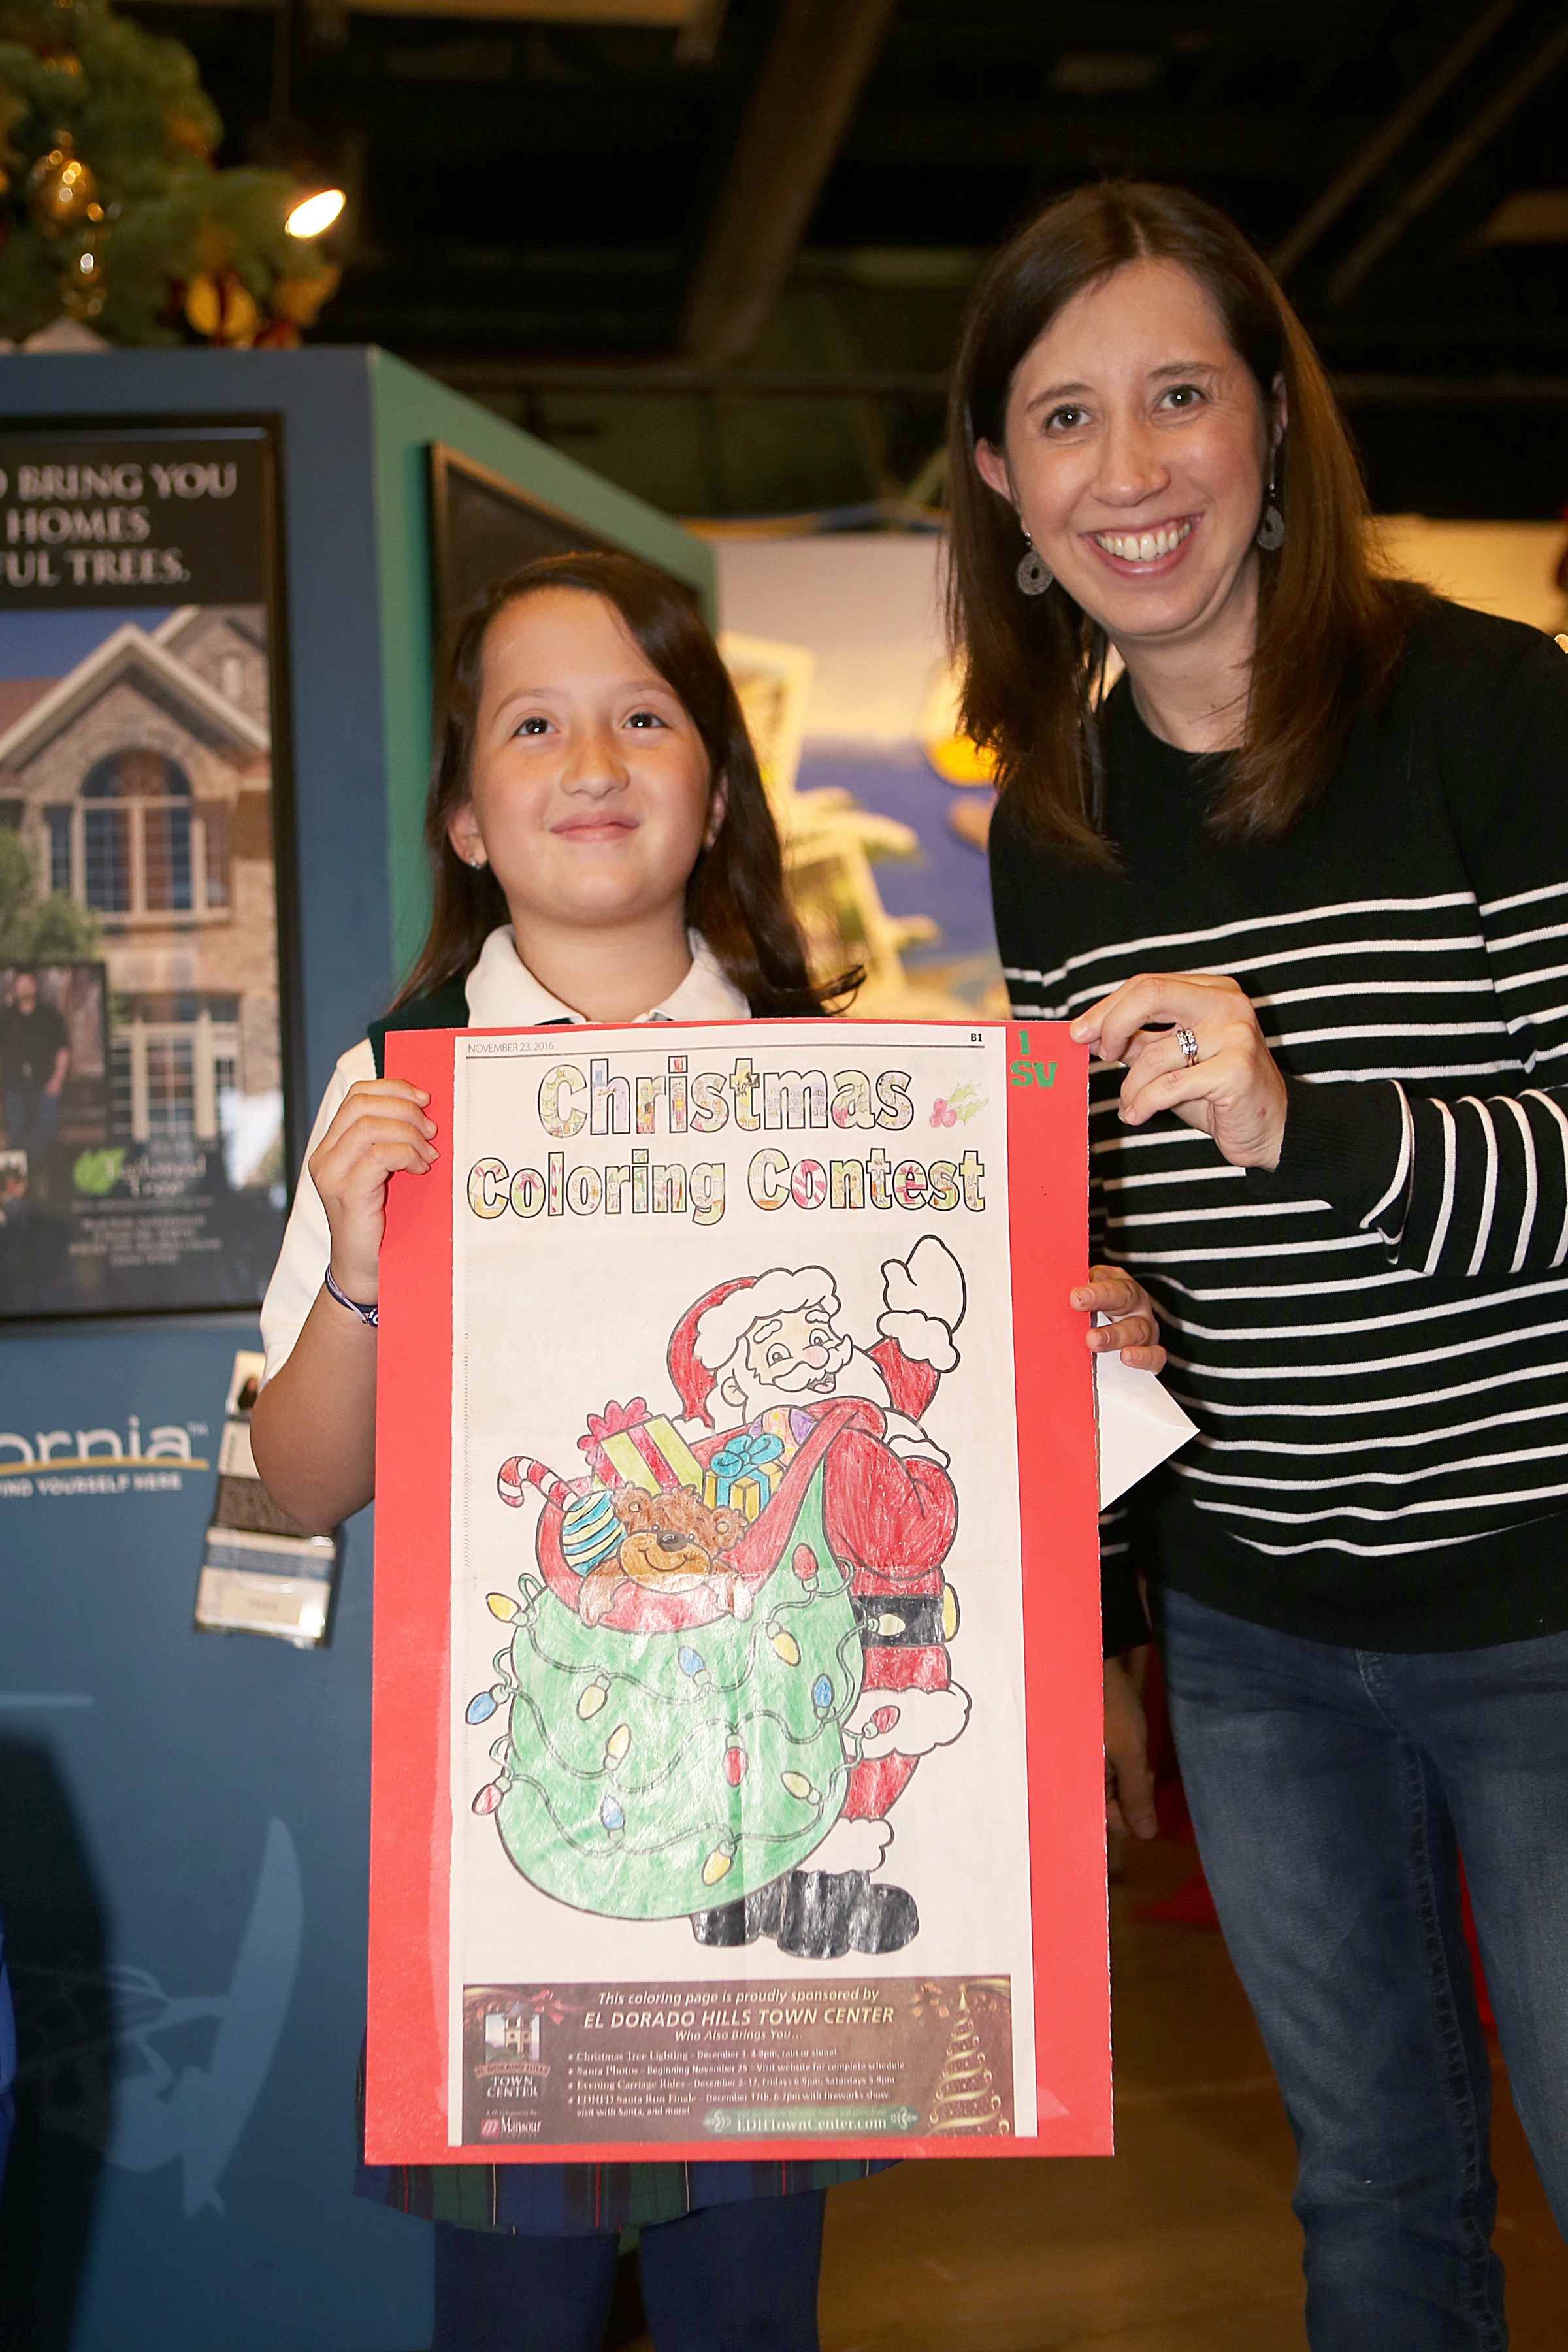 1st place winner, Sophia Voudouris, 9, of El Dorado Hills. Democrat photo by Shelly Thorene